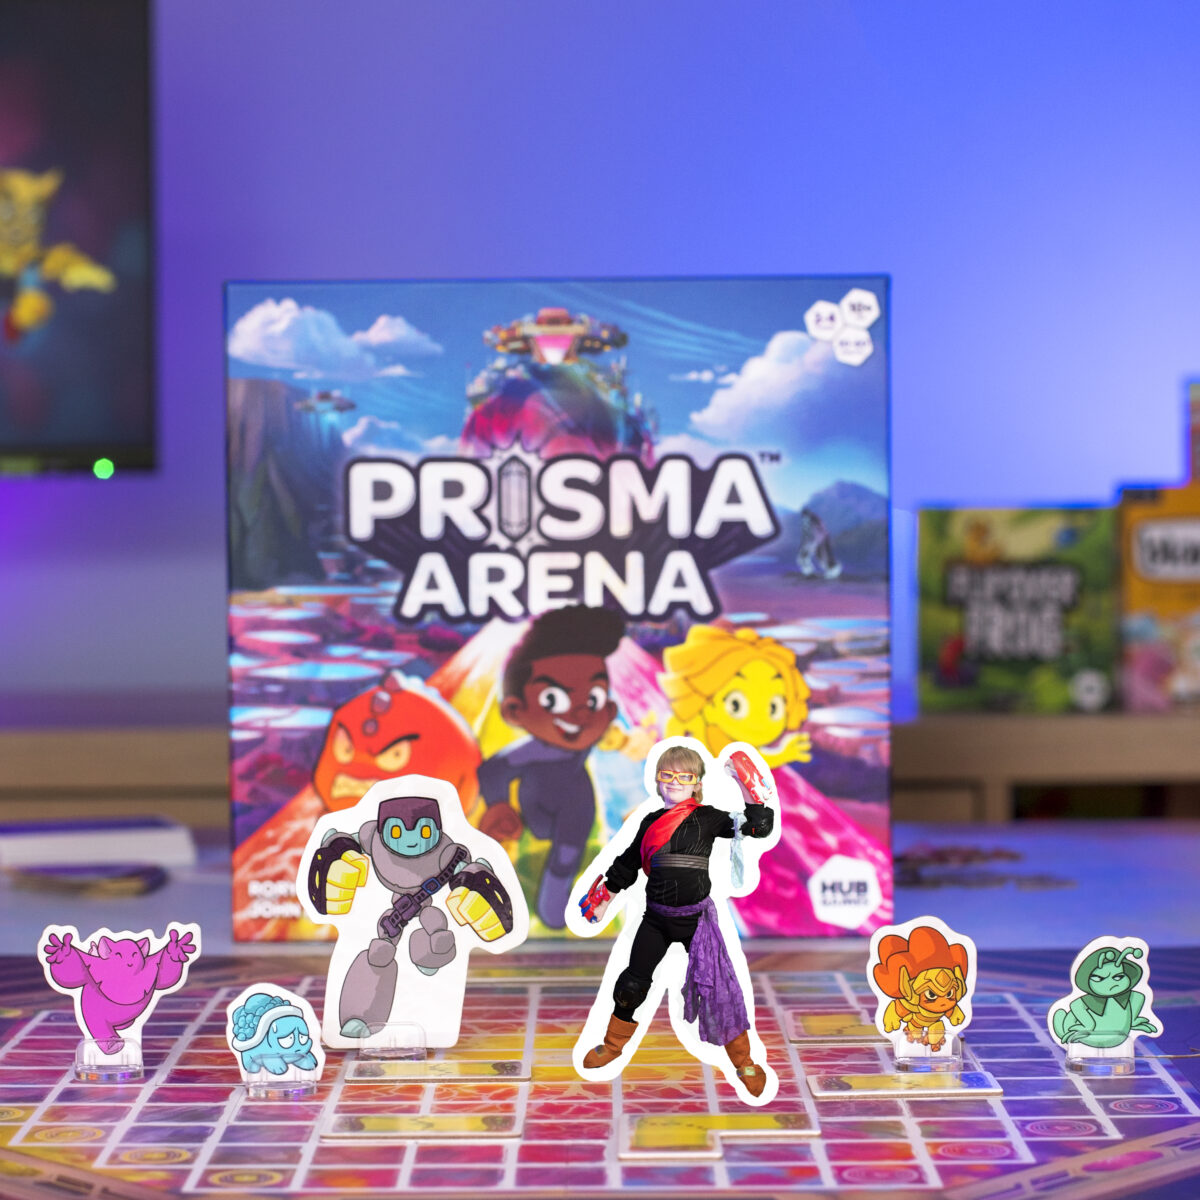 Prisma Arena Tabletop Game from Hub Games. Picture shows Heroes and Mo'kons from the game with a child posing as one of the game standee pieces.  The colours are bright and vivid.